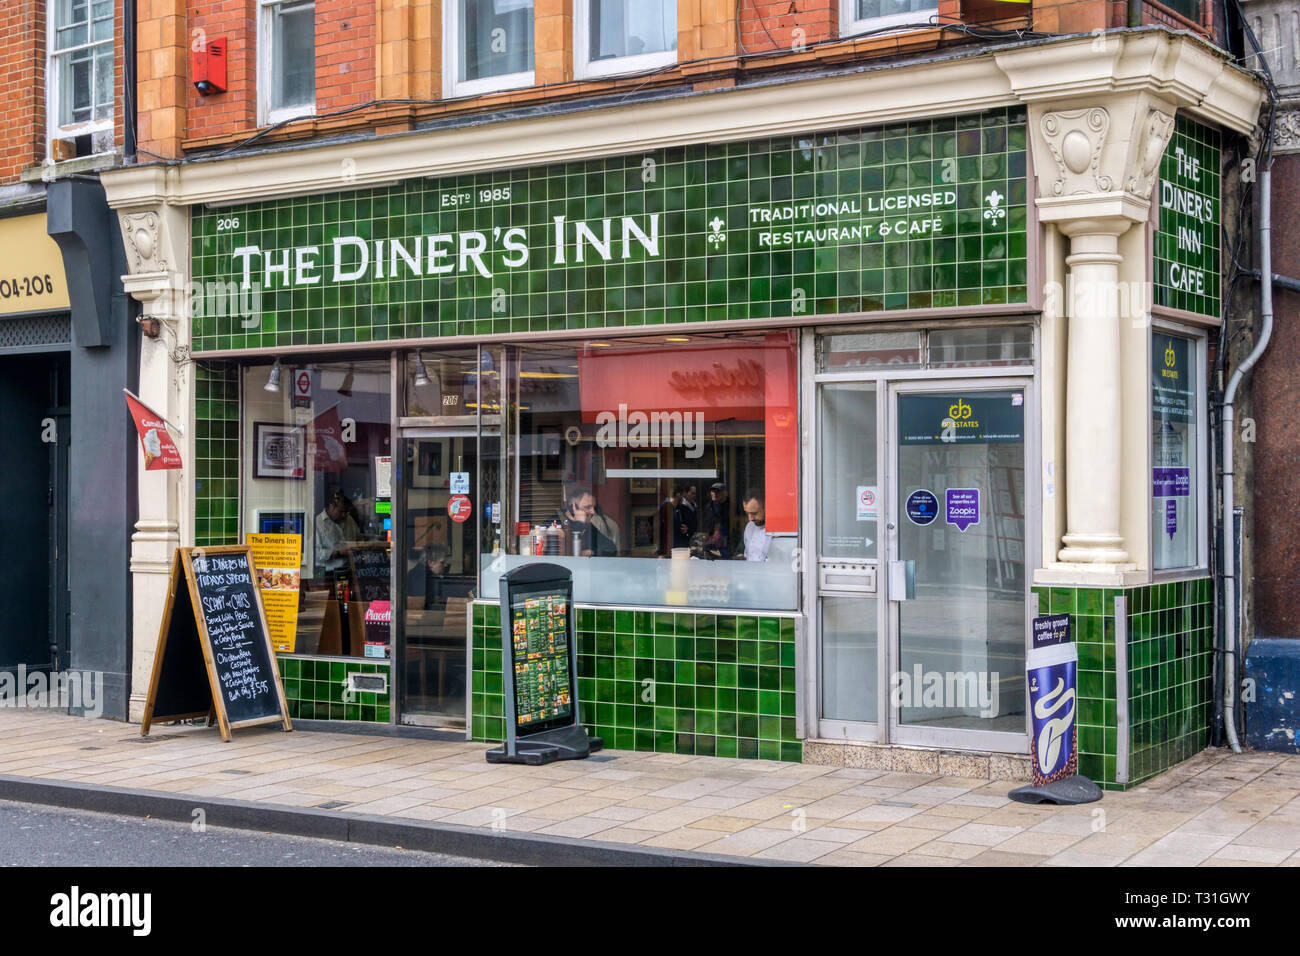 The Diner's Inn Cafe in Bromley, South London - Stock Image